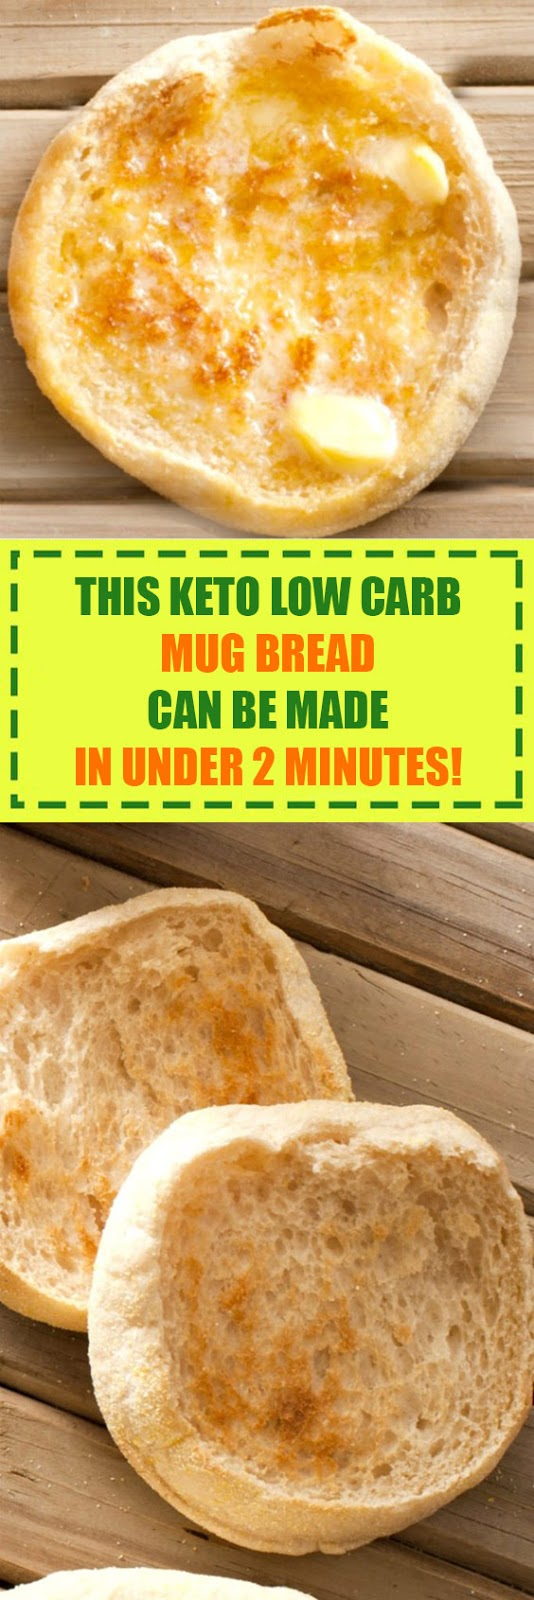 This Keto Low Carb Mug Bread Can Be Made in Under 2 Minutes!